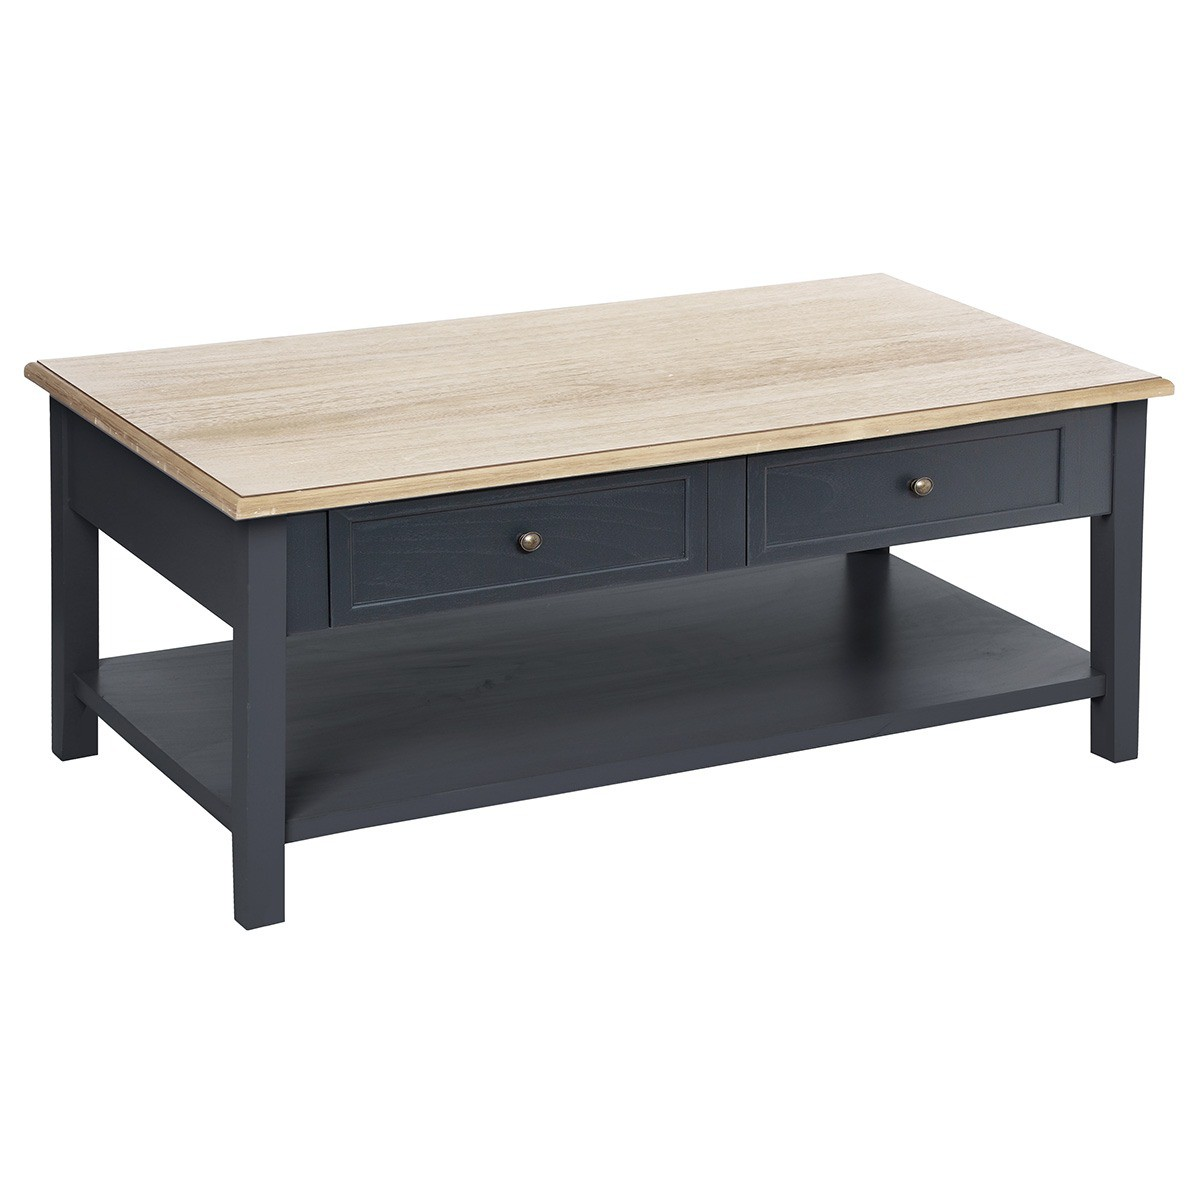 Hiver Damian 4 Table basse tiroirs gf76yYb